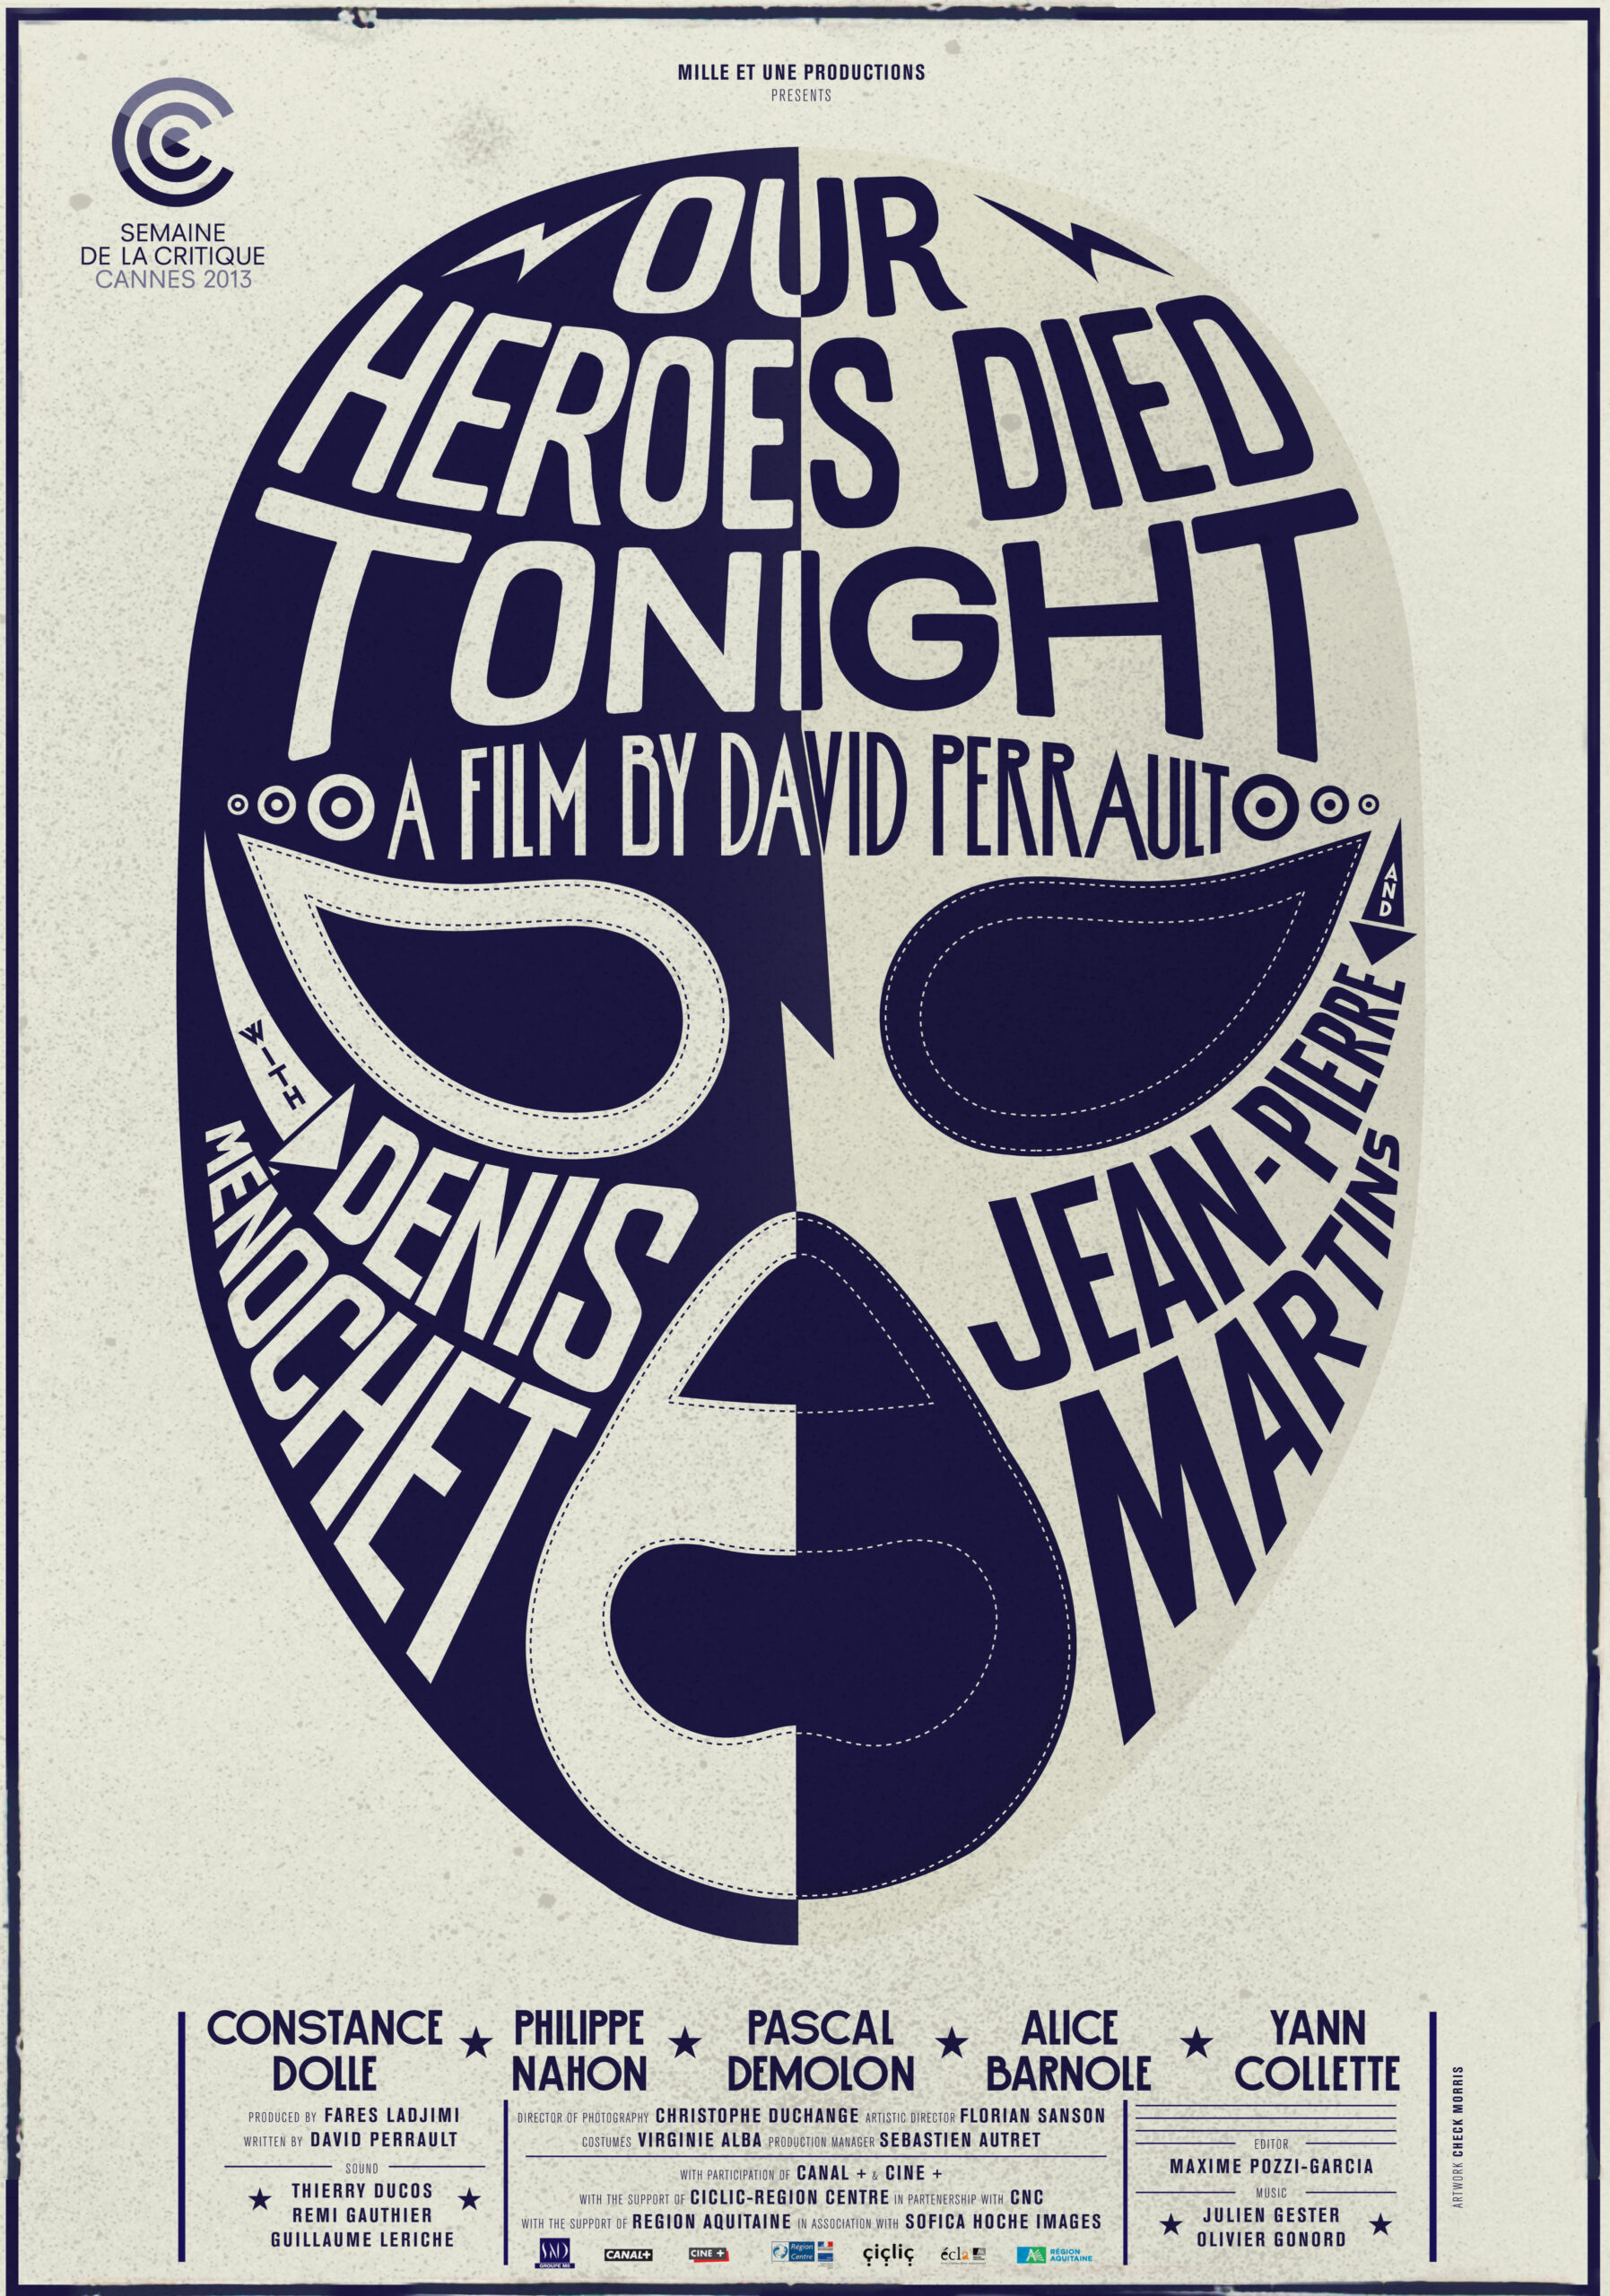 Our heroes died tonight